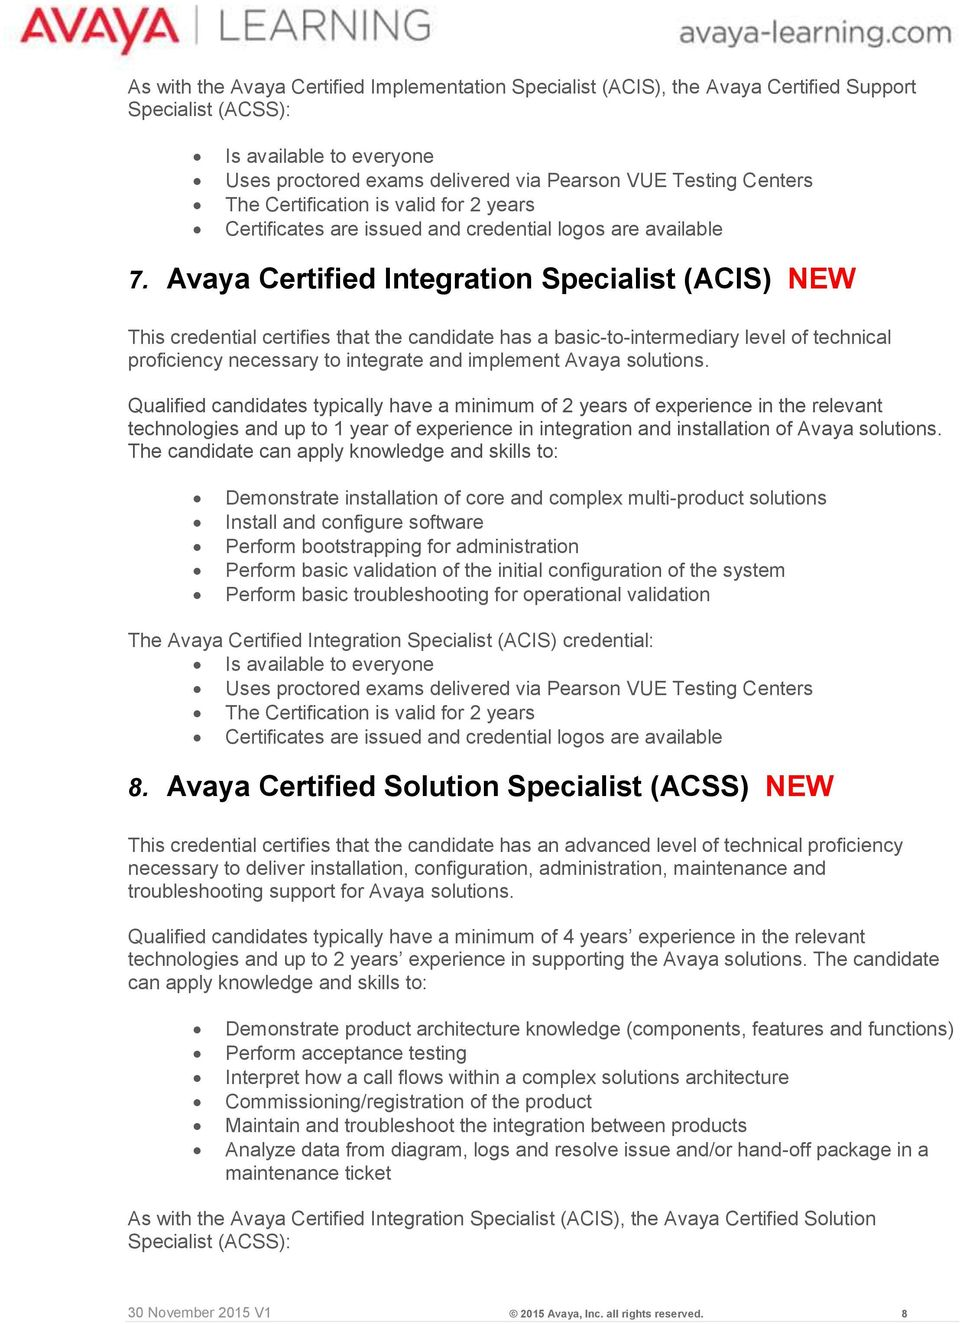 Avaya Certified Integration Specialist (ACIS) NEW This credential certifies that the candidate has a basic-to-intermediary level of technical proficiency necessary to integrate and implement Avaya